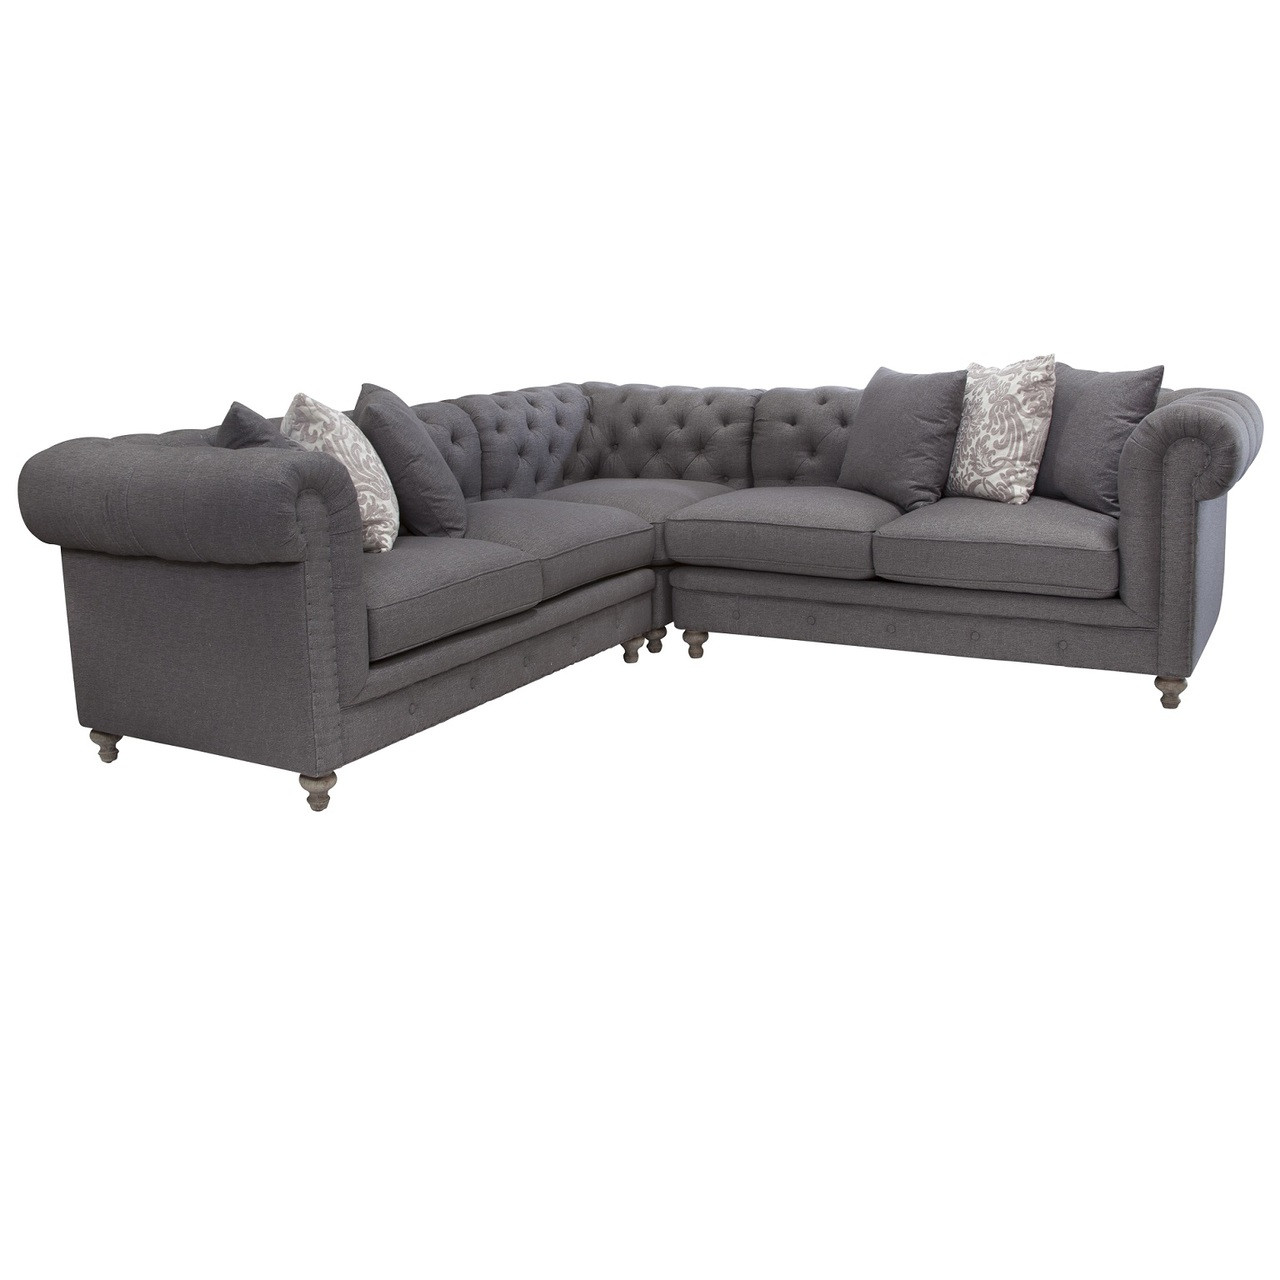 Alice Charcoal Tufted 3-Piece Corner Sectional Sofa